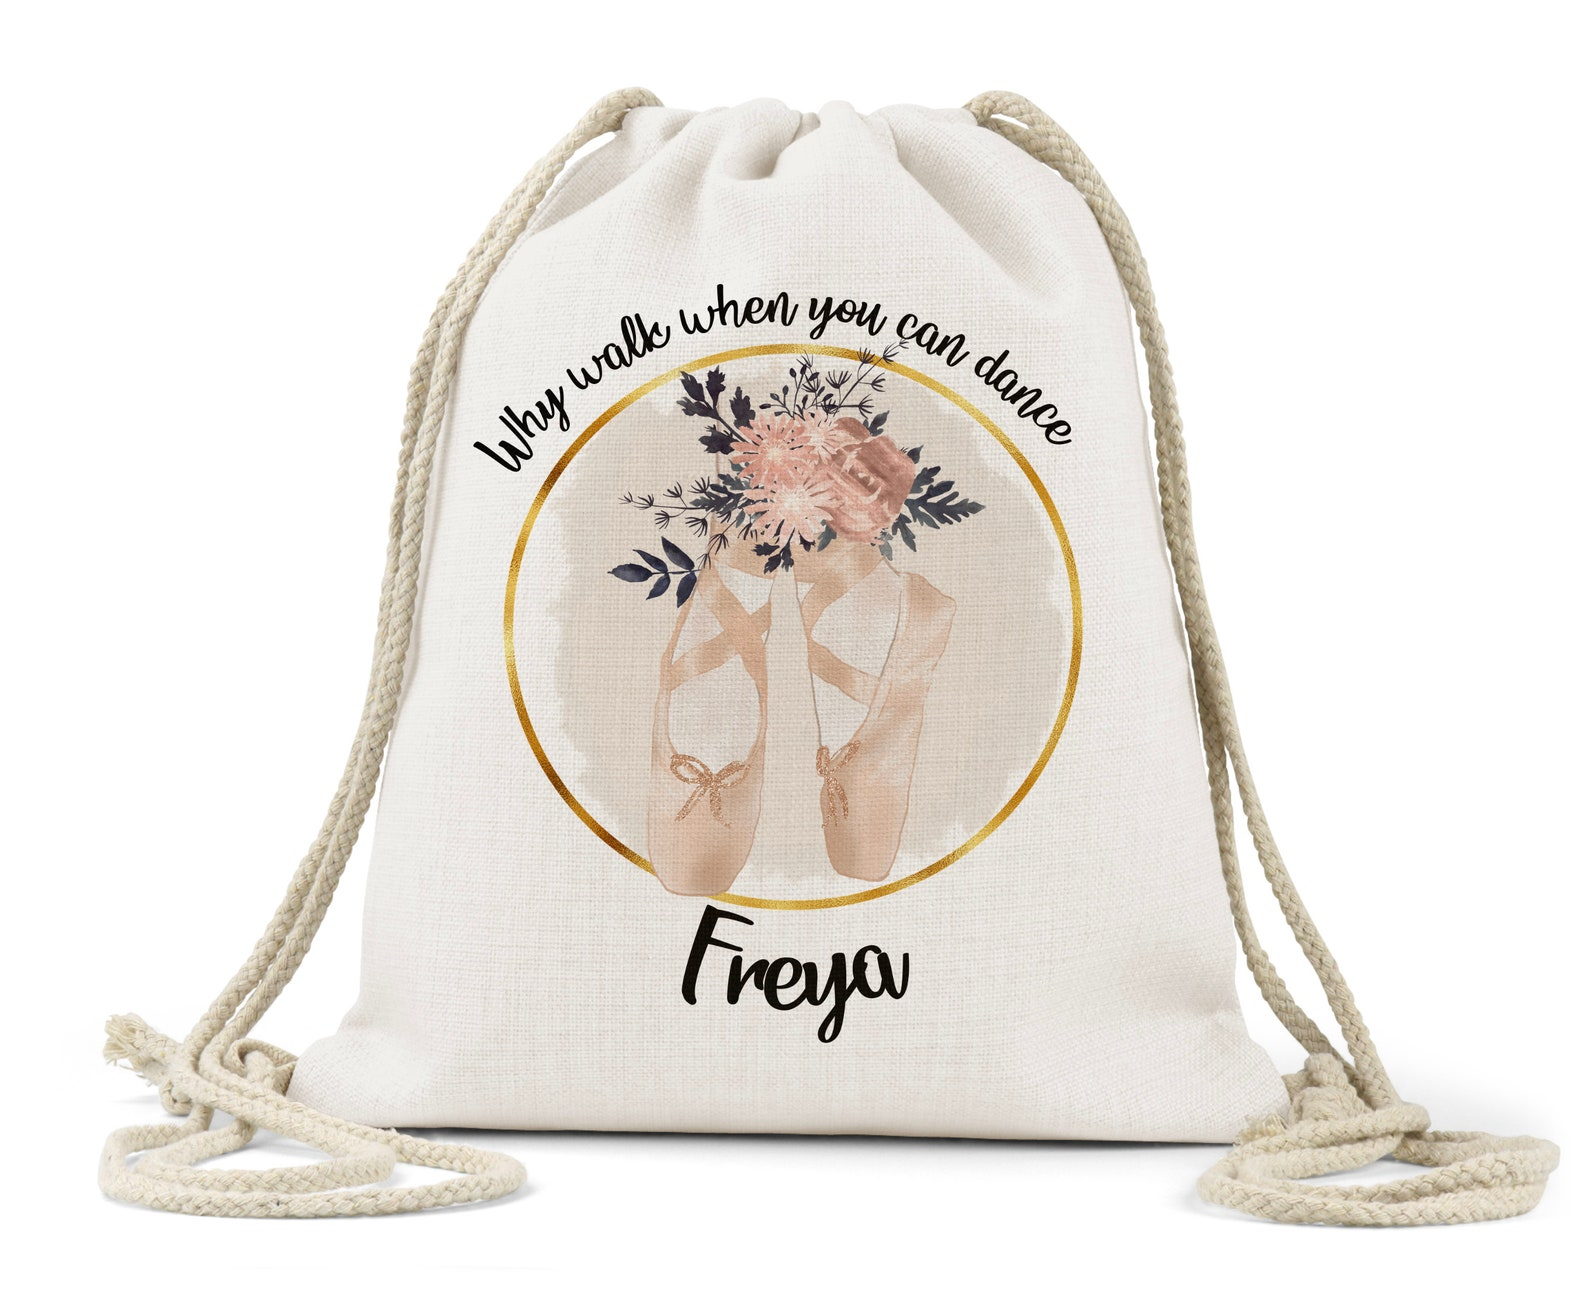 personalised girls drawstring bag, linen,dancer, ballet, dancing shoes, daughter, teacher, god-daughter, niece, sister gift